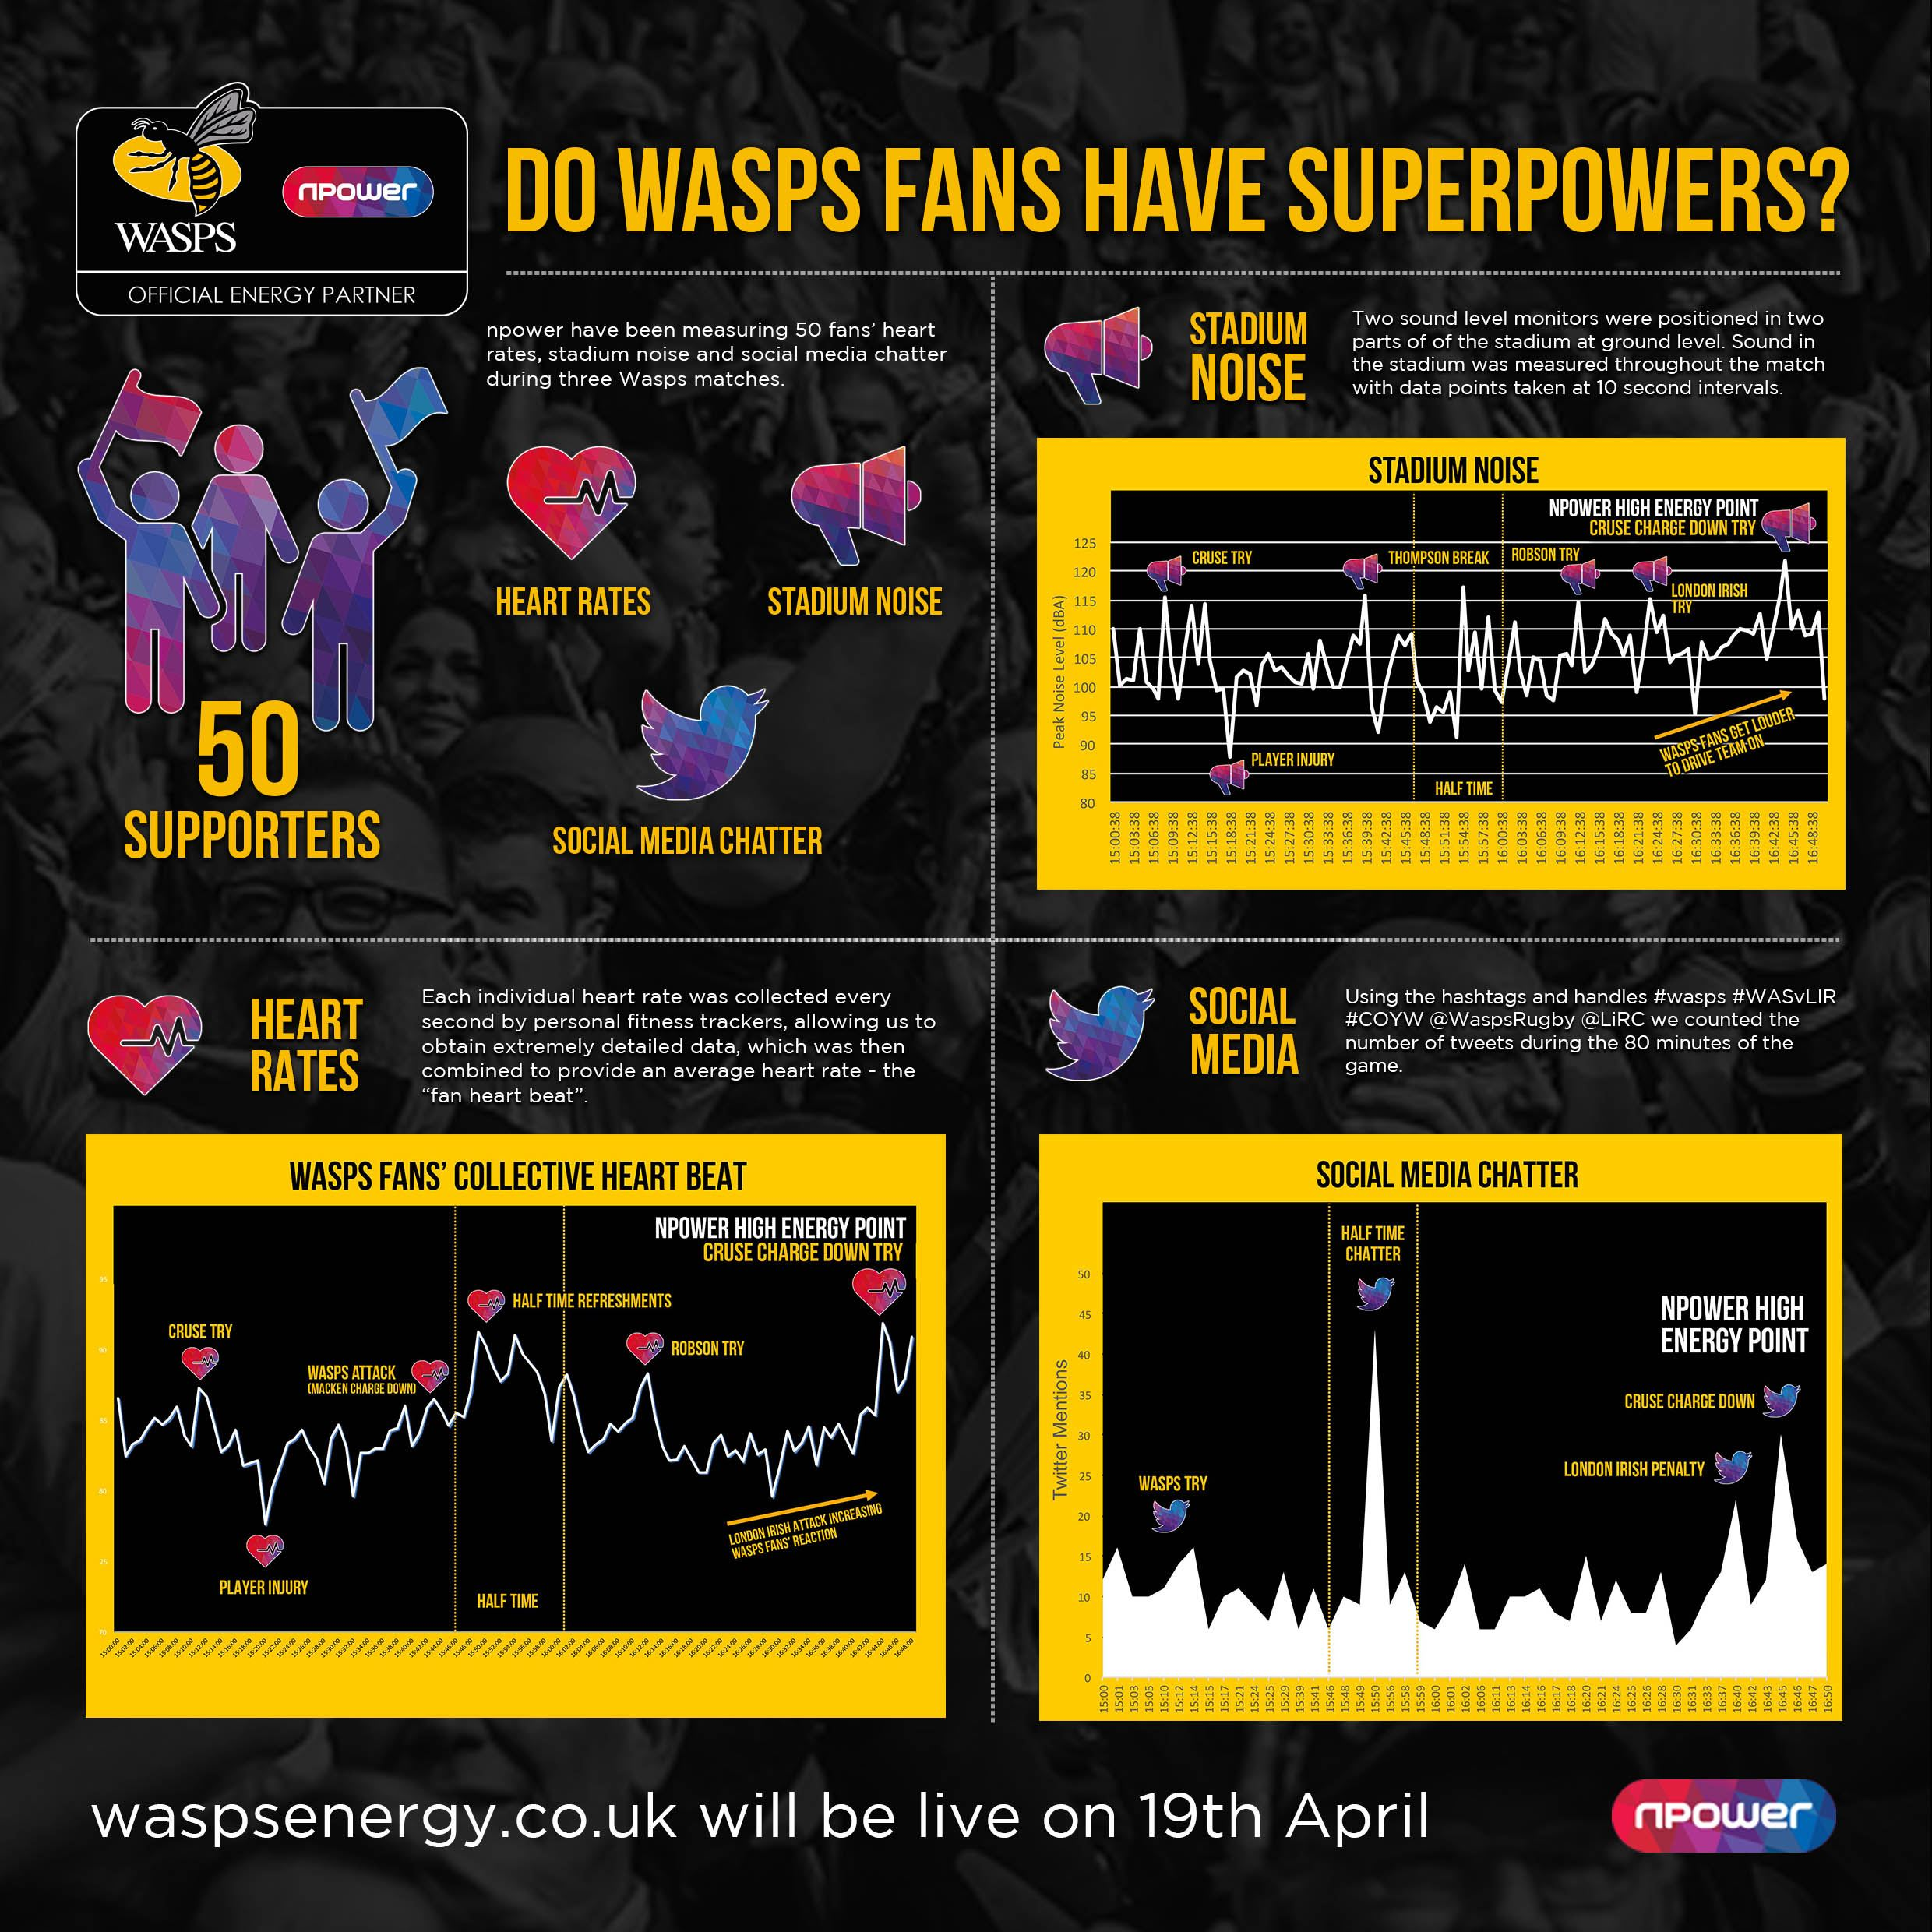 npower wasps fans superpowers infographic